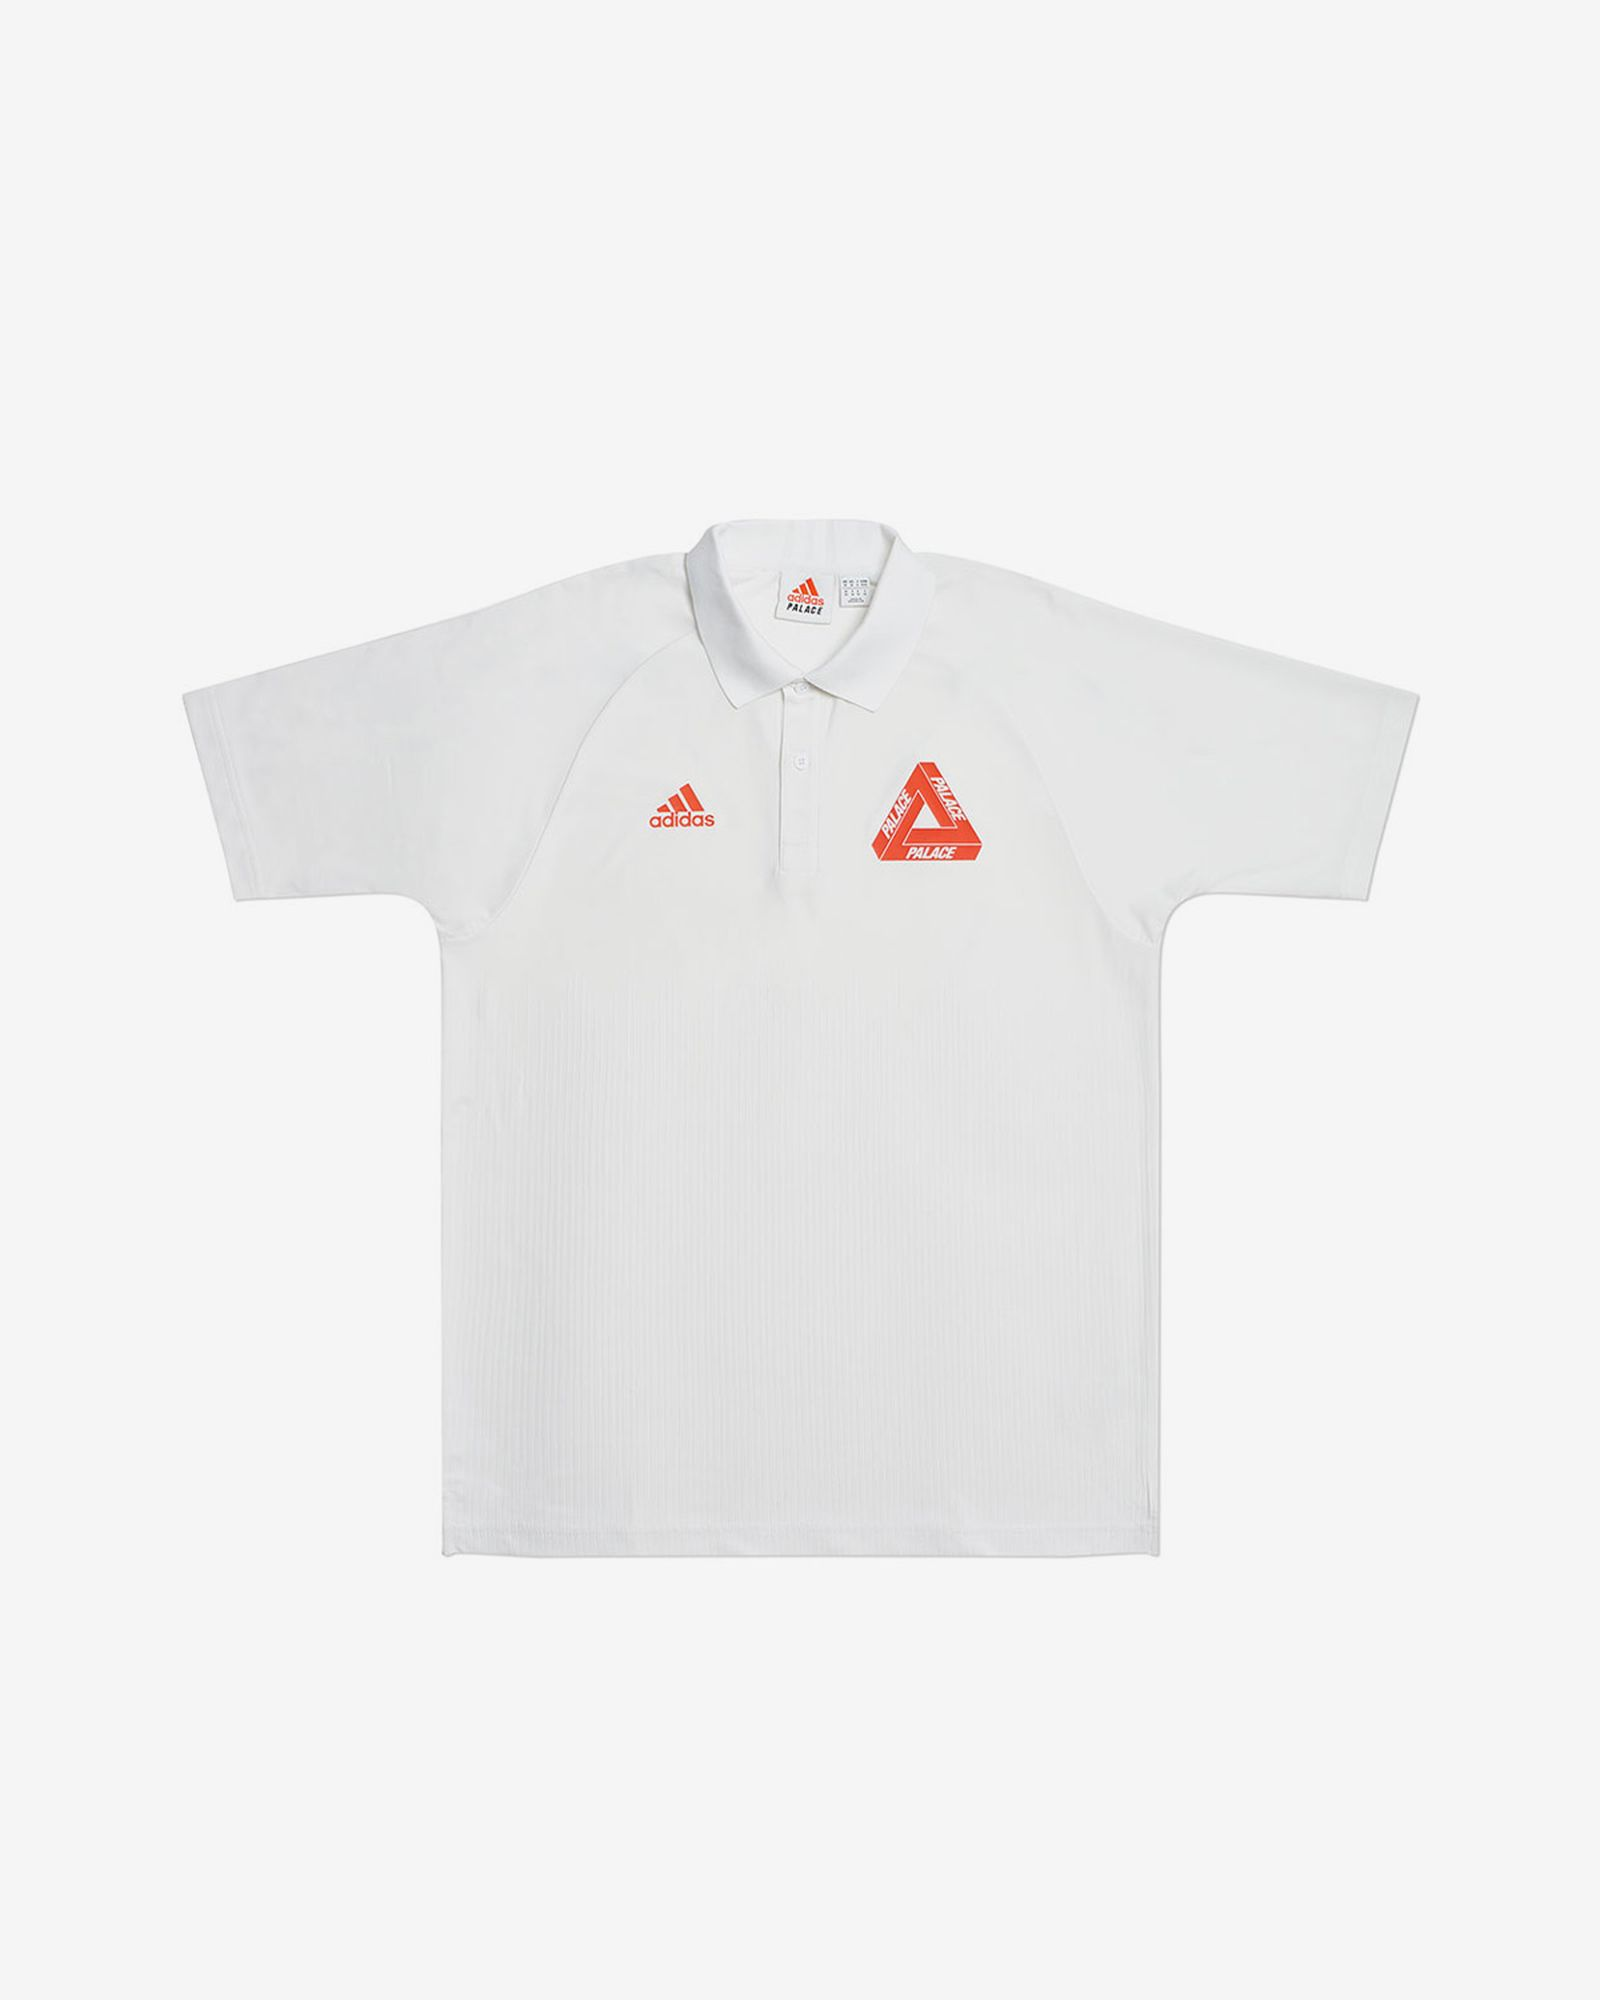 palace-adidas-golf-collaboration-official-look-05